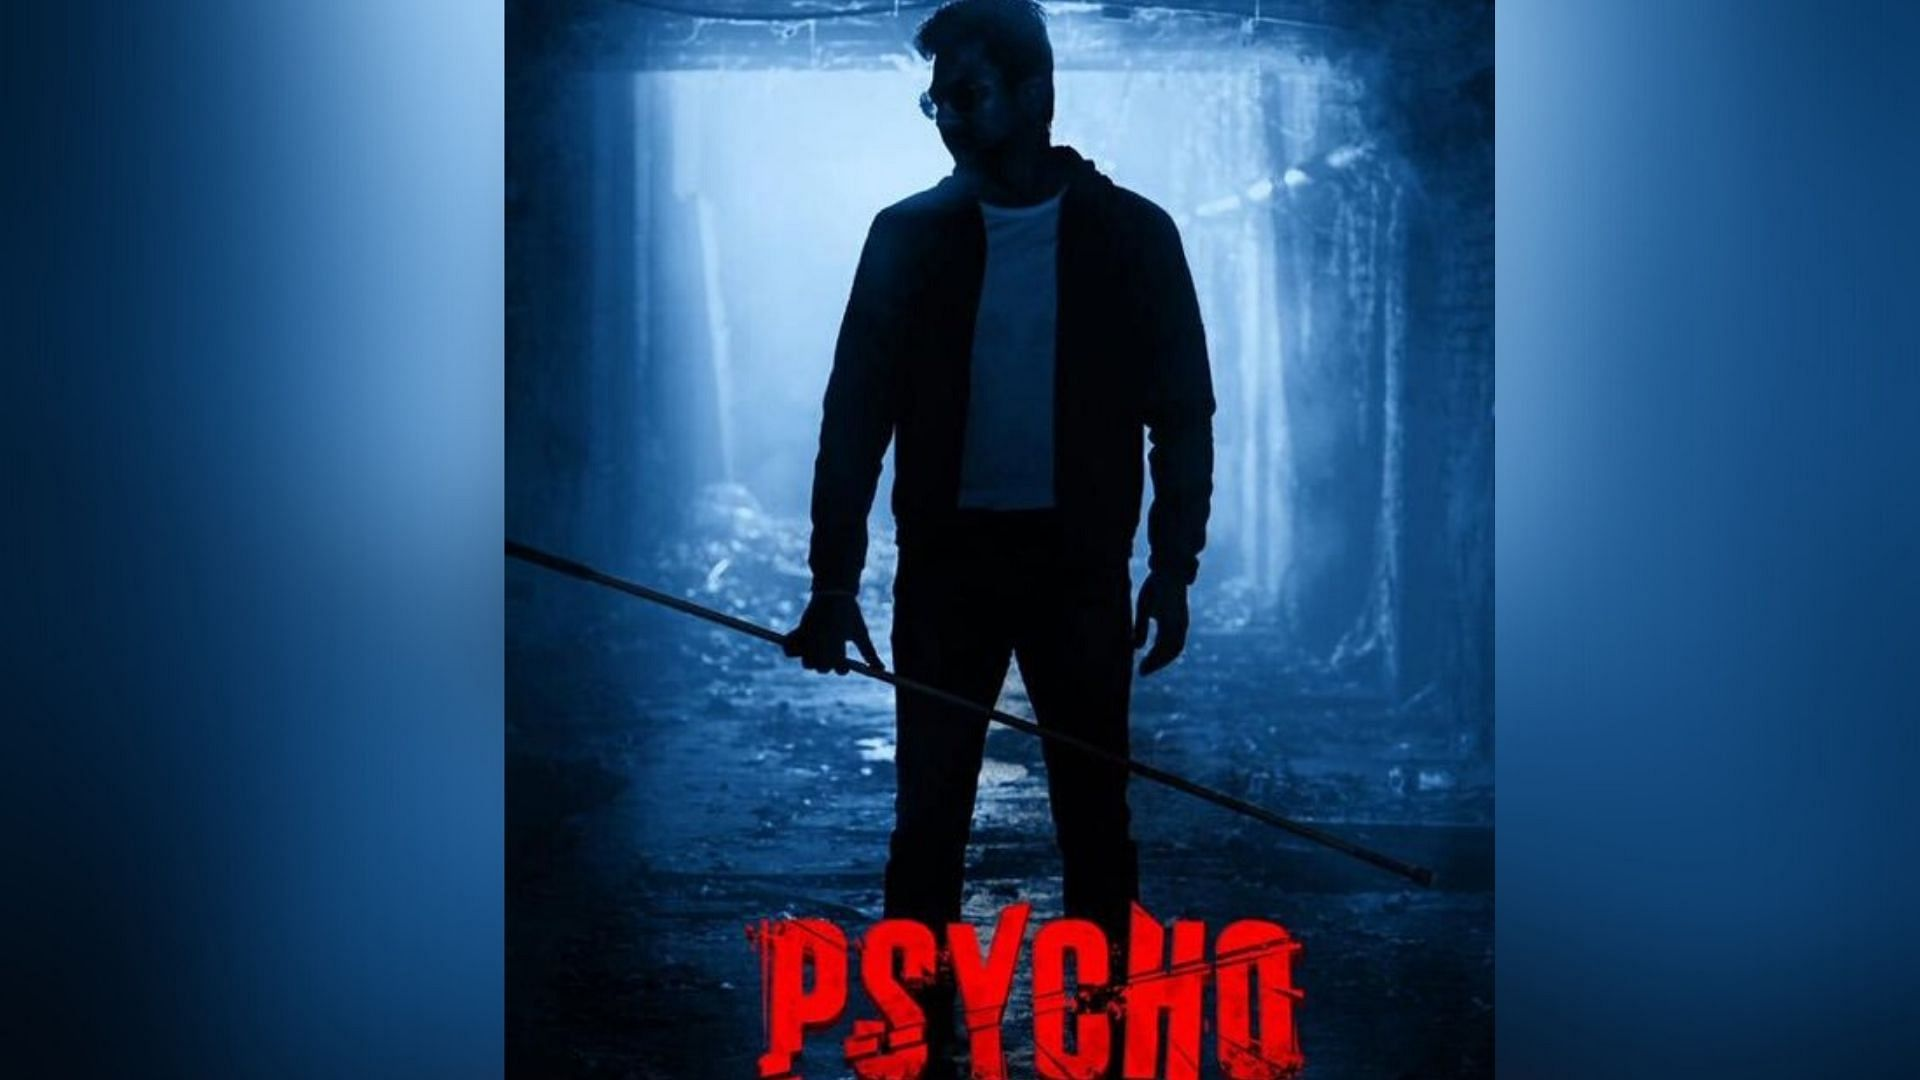 Mysskin's 'Psycho' Review: A Ray of Sunshine Under Dried Blood